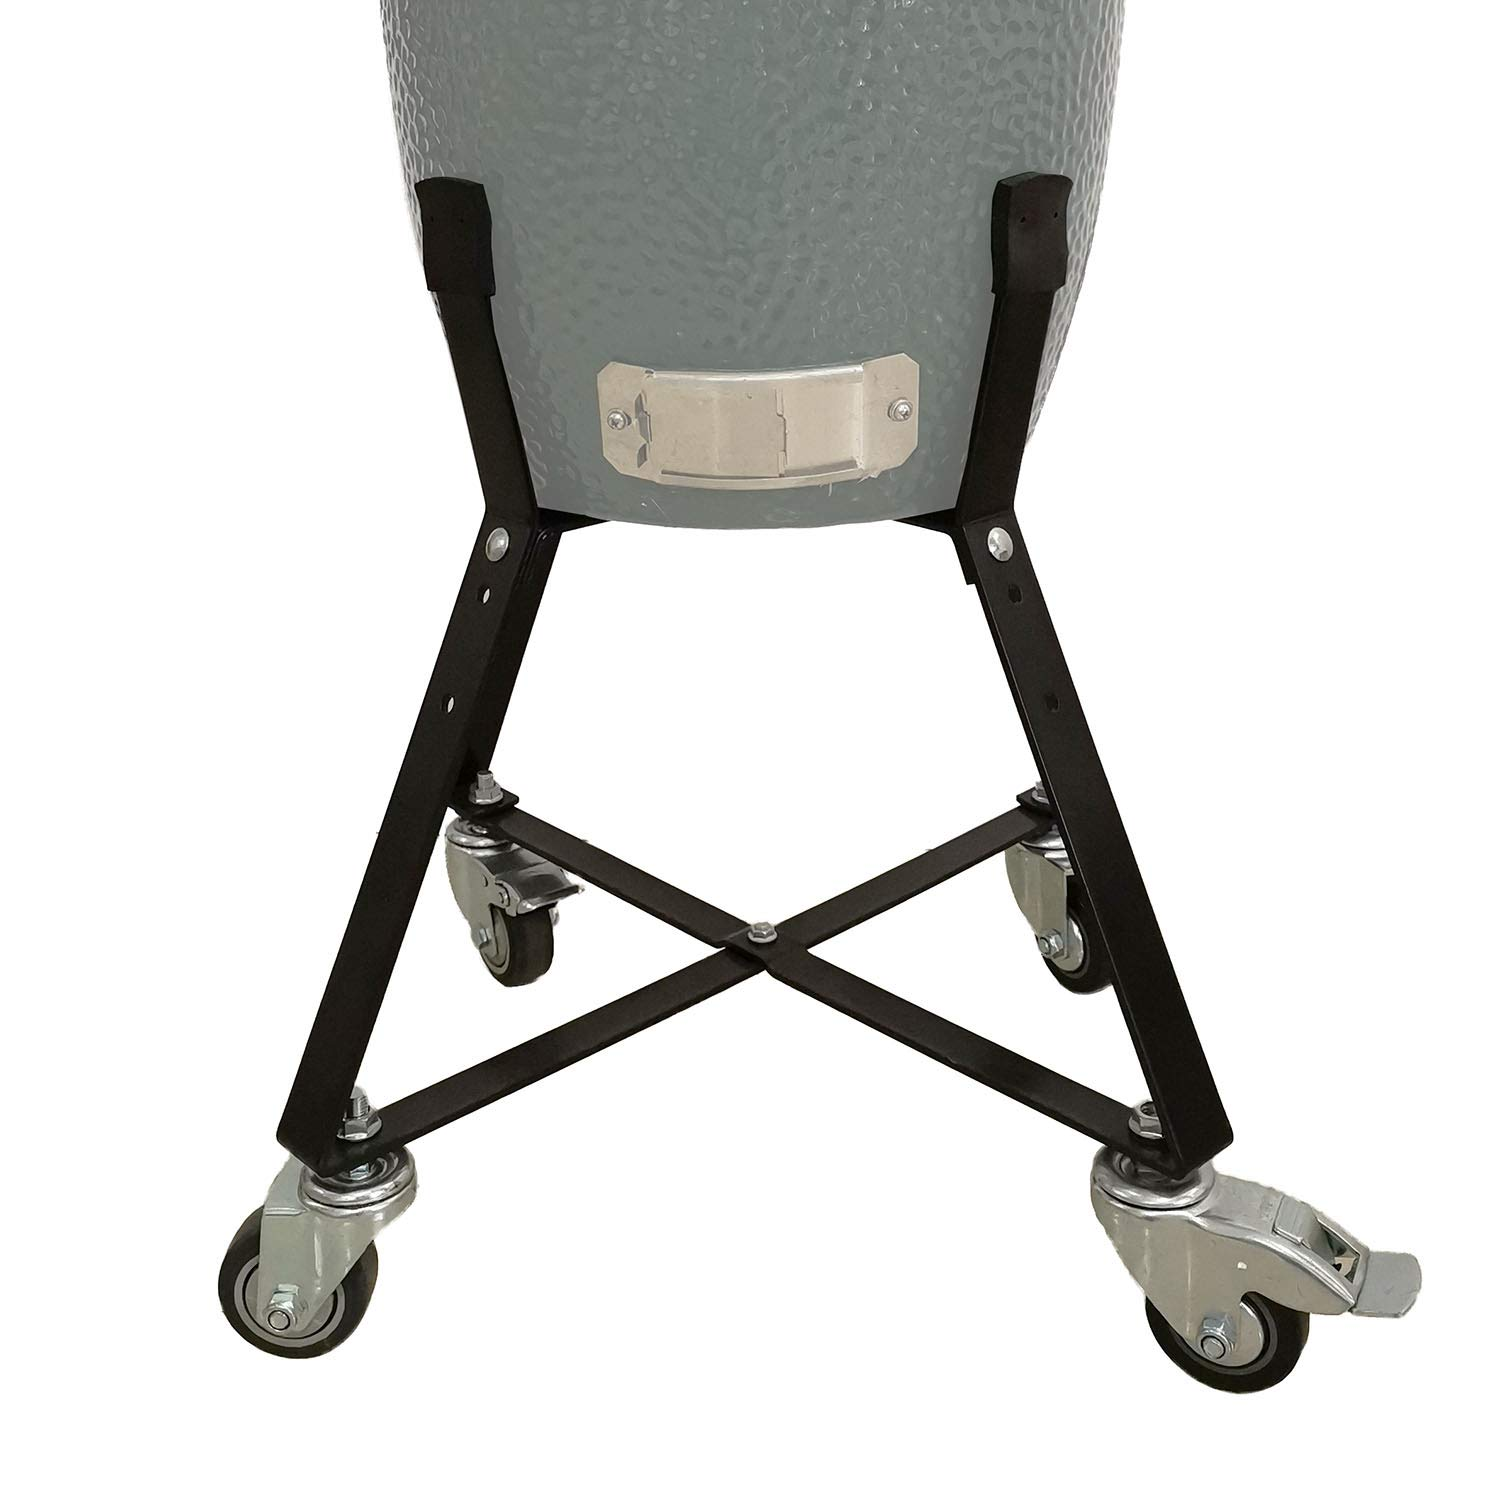 Rolling Cart Nest for Small Big Green Egg with Heavy Duty Locking Caster Wheels Powder Coated Steel Rolling Outdoor Cart Kamado Stand Cooking Accessories Raise Egg Round Pit (Fit for S BGE)